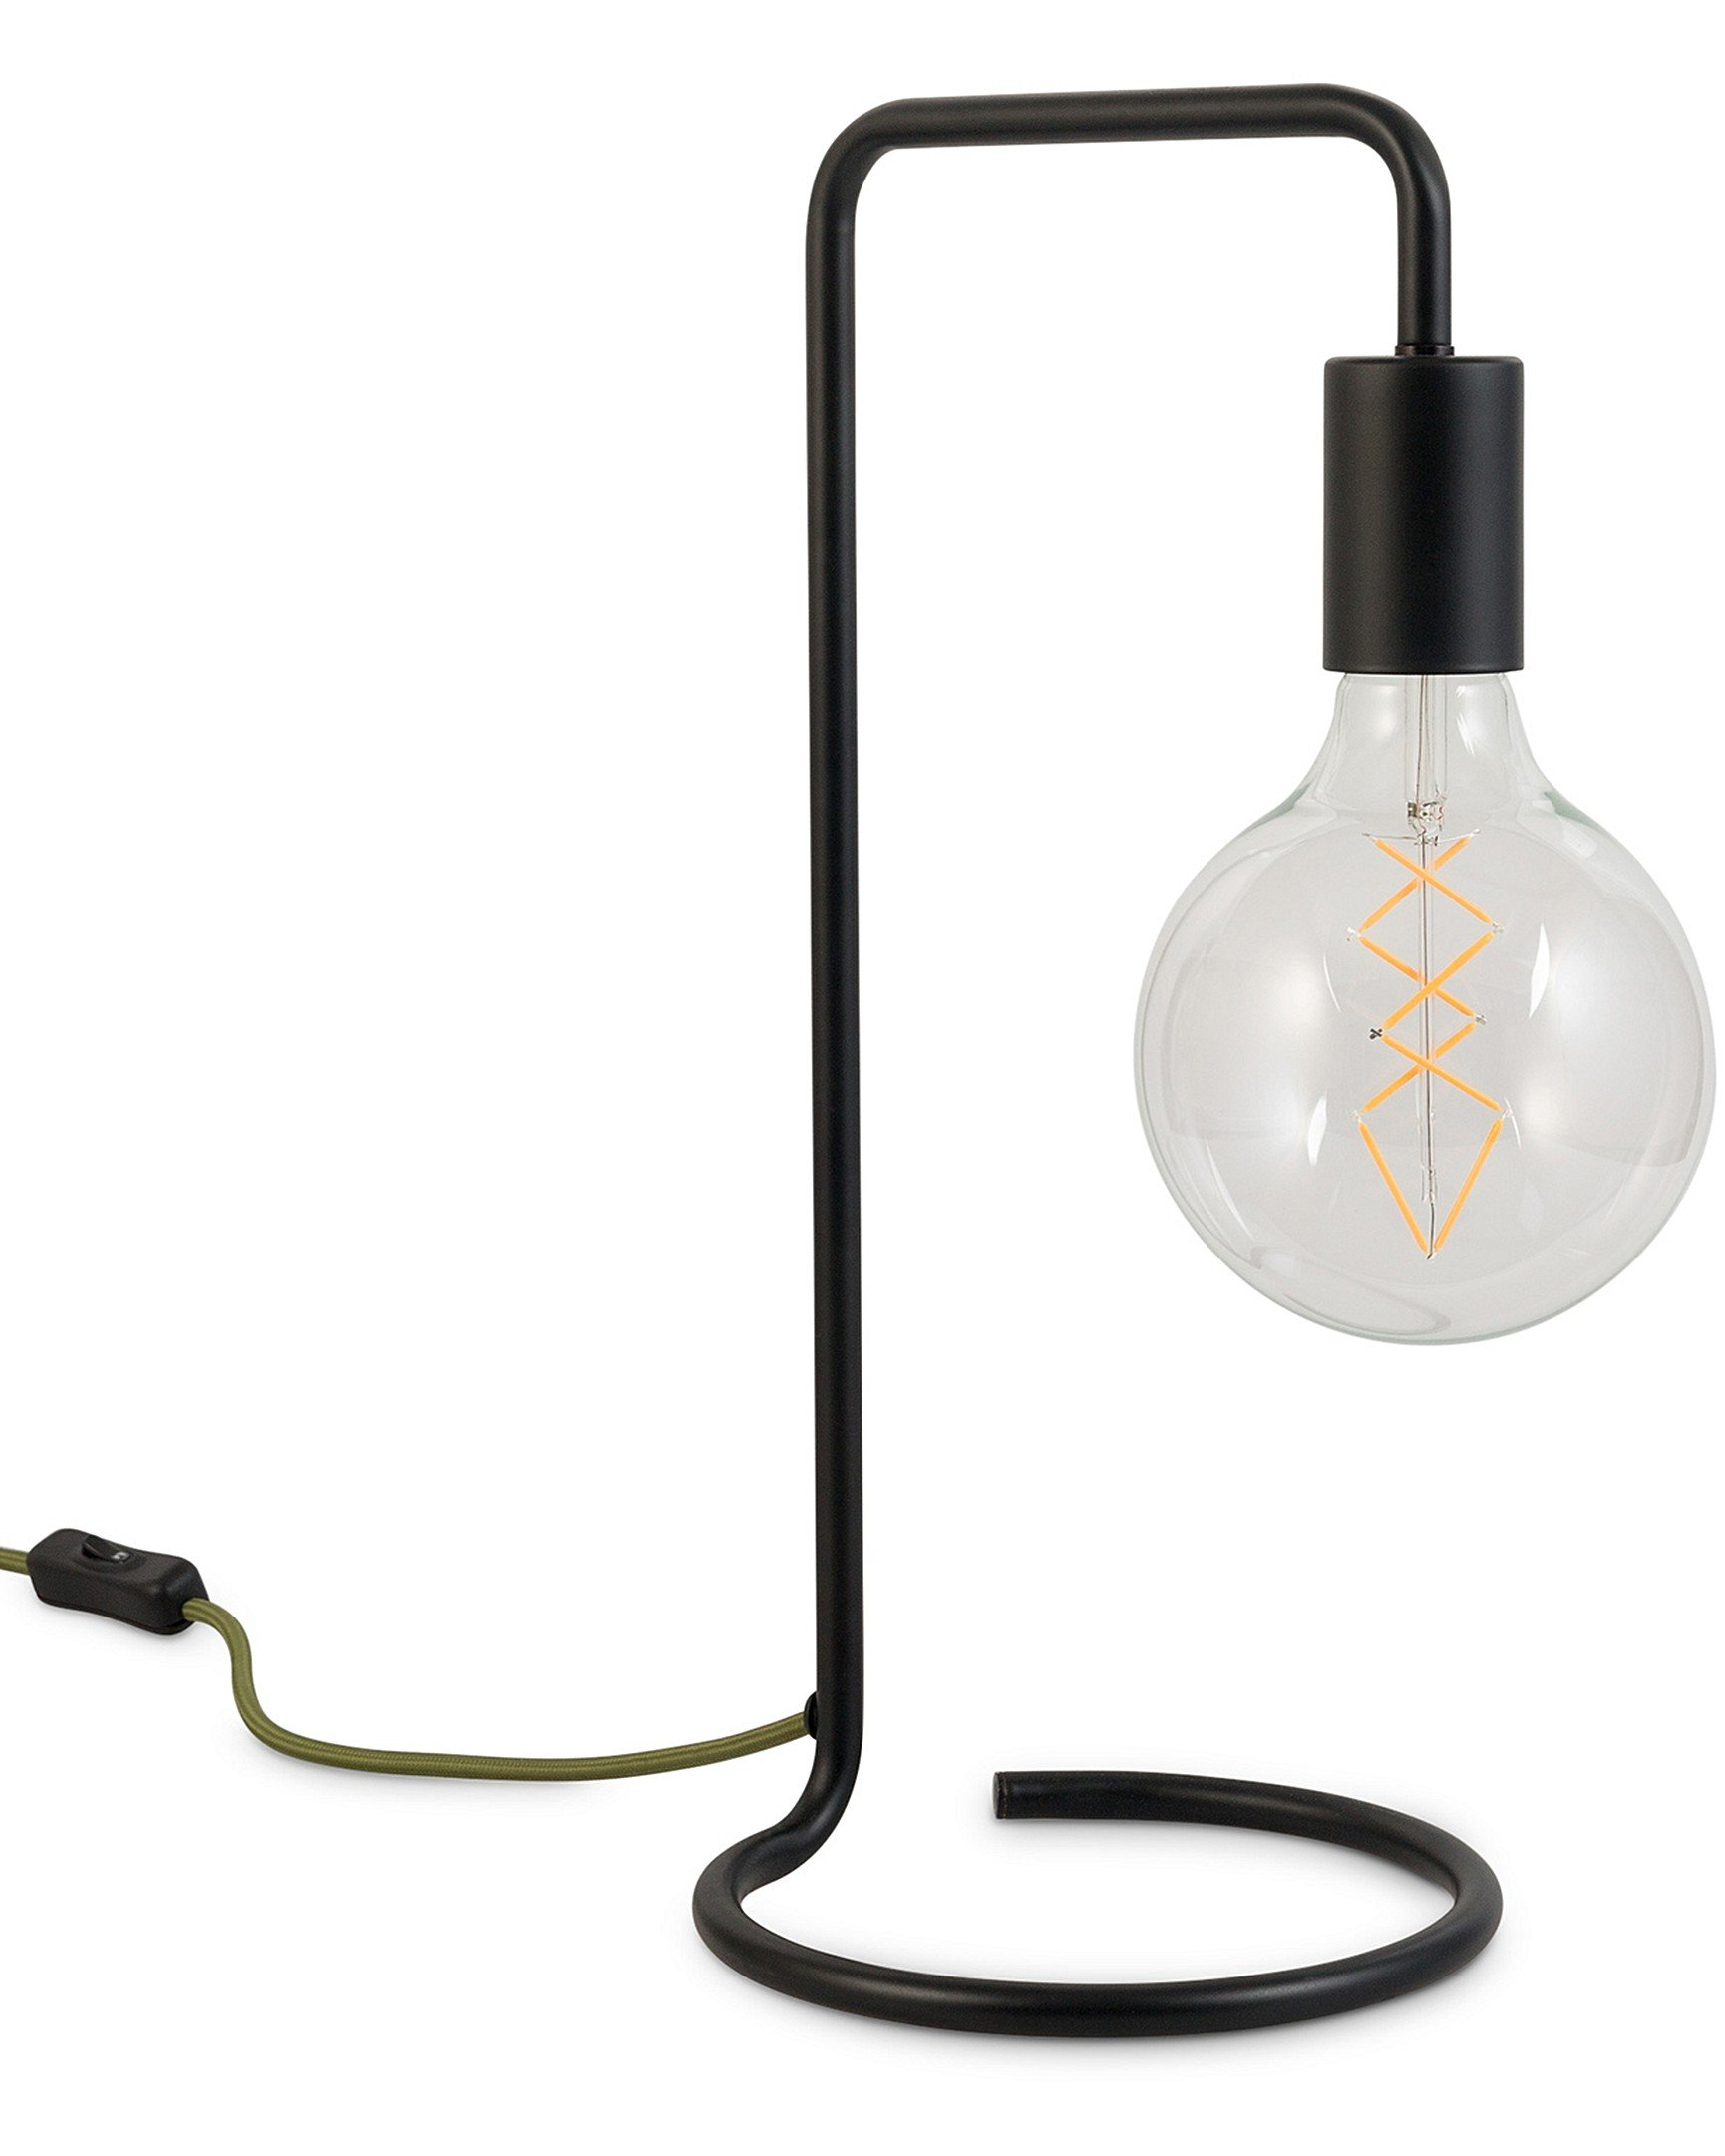 Lamps Amp Lighting Oliver Bonas